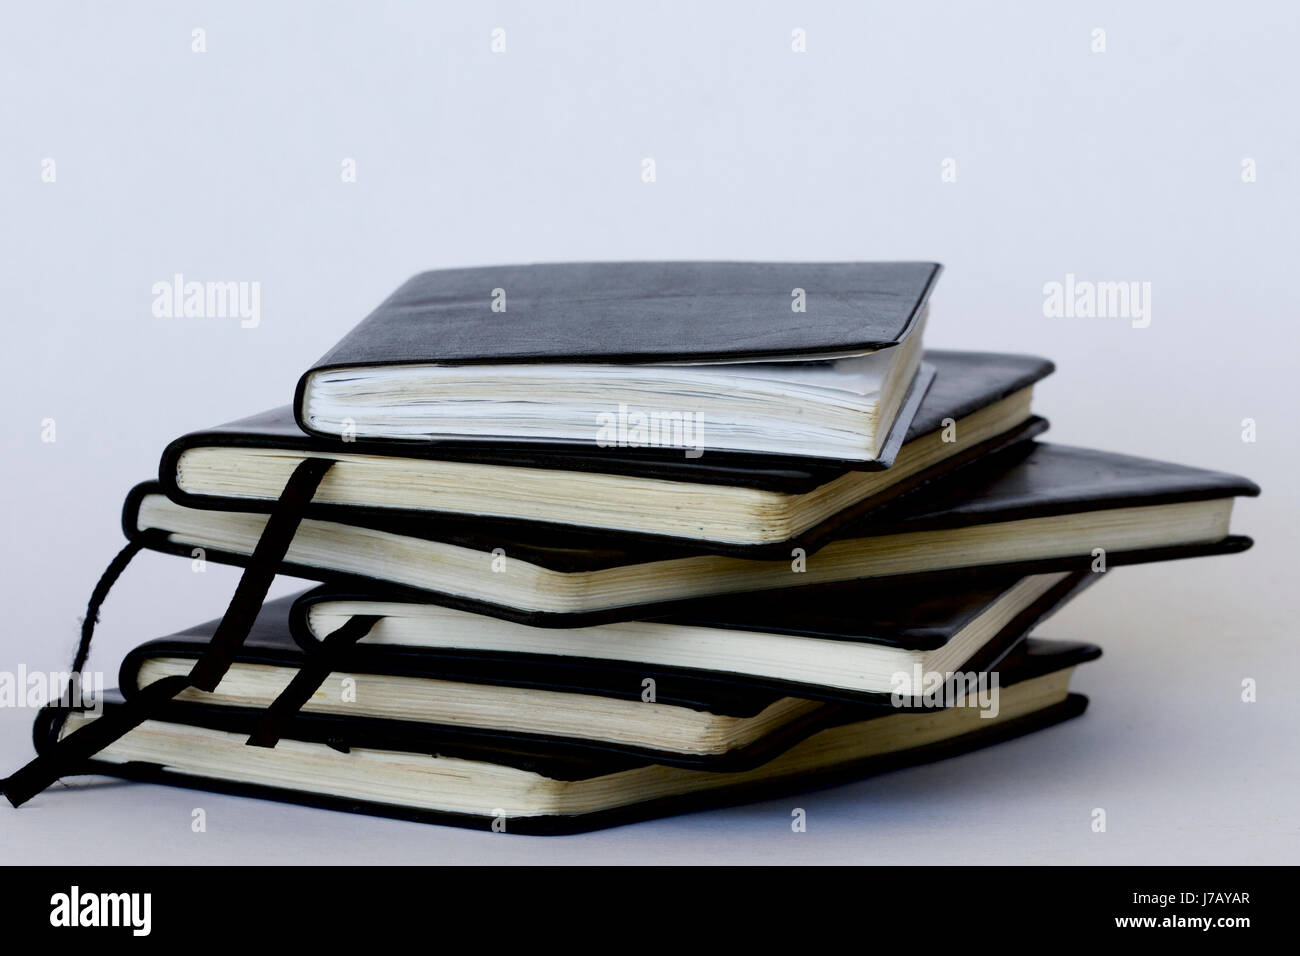 Stack of old leather covered diaries. - Stock Image